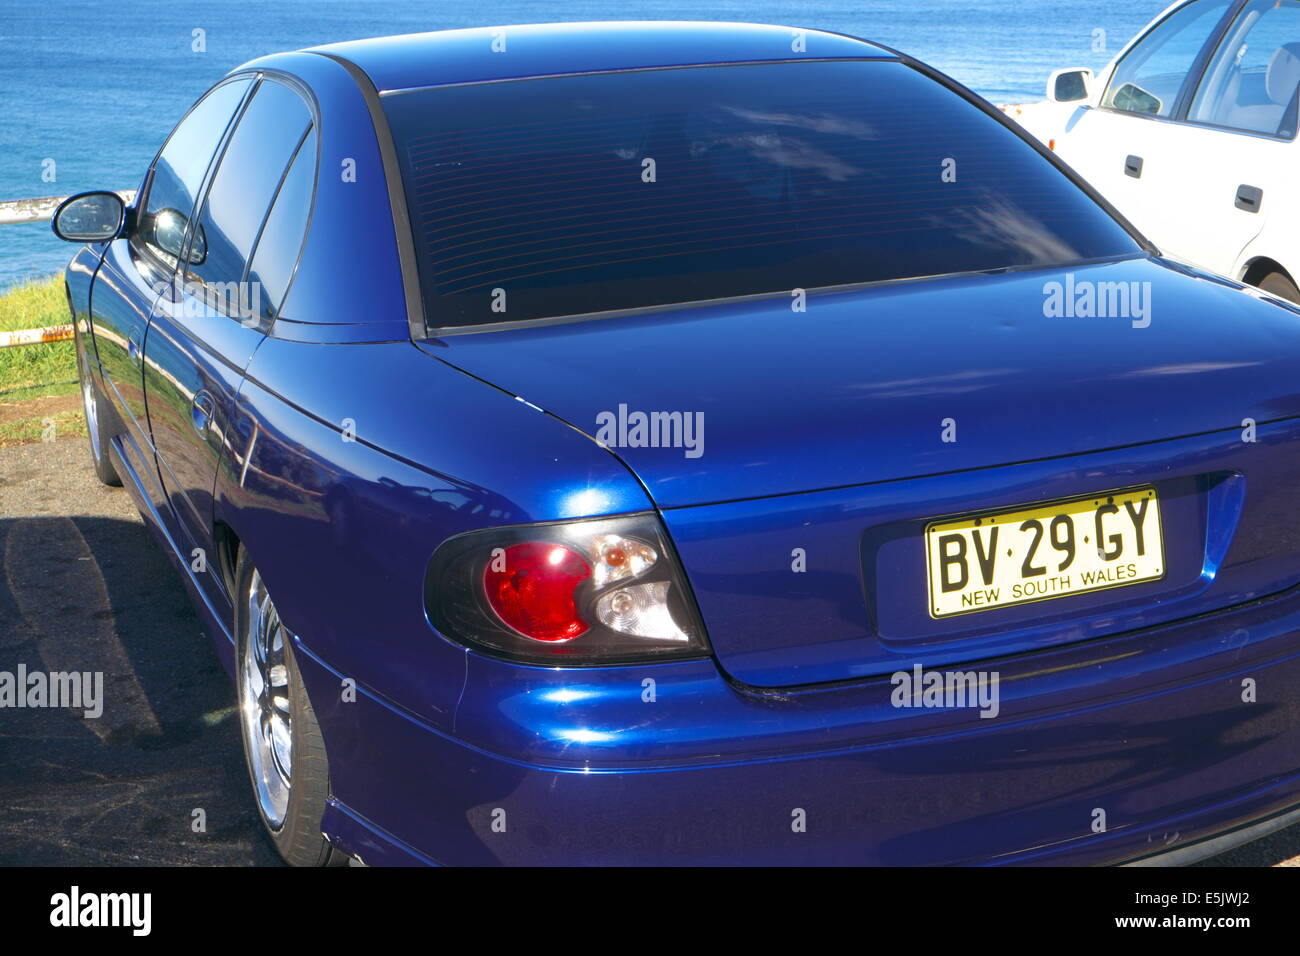 Holden commodore motor car parked by a sydney beach,new south wales,australia - Stock Image